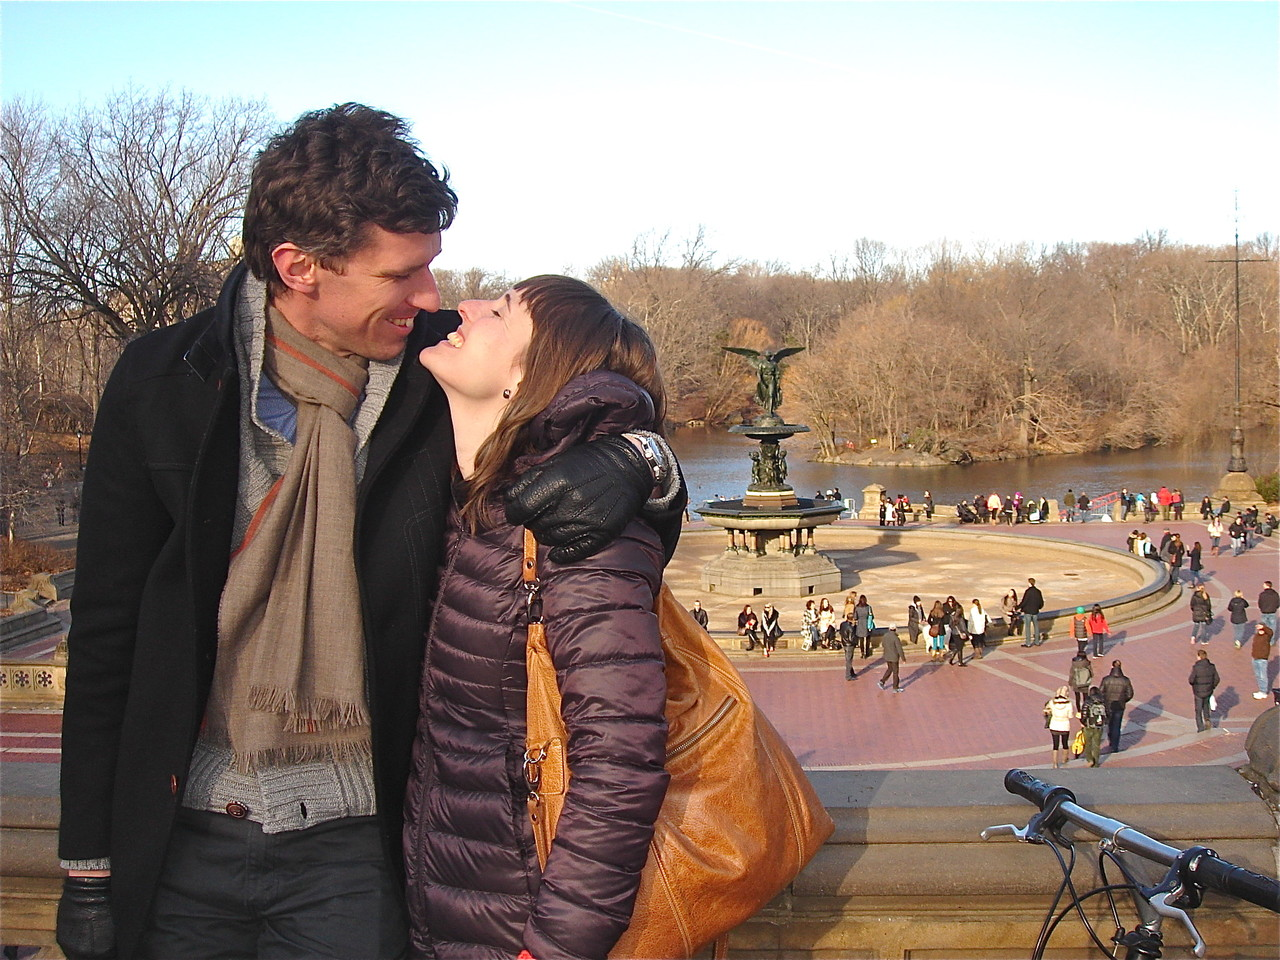 Patrick and Anna in Central Park, NYC